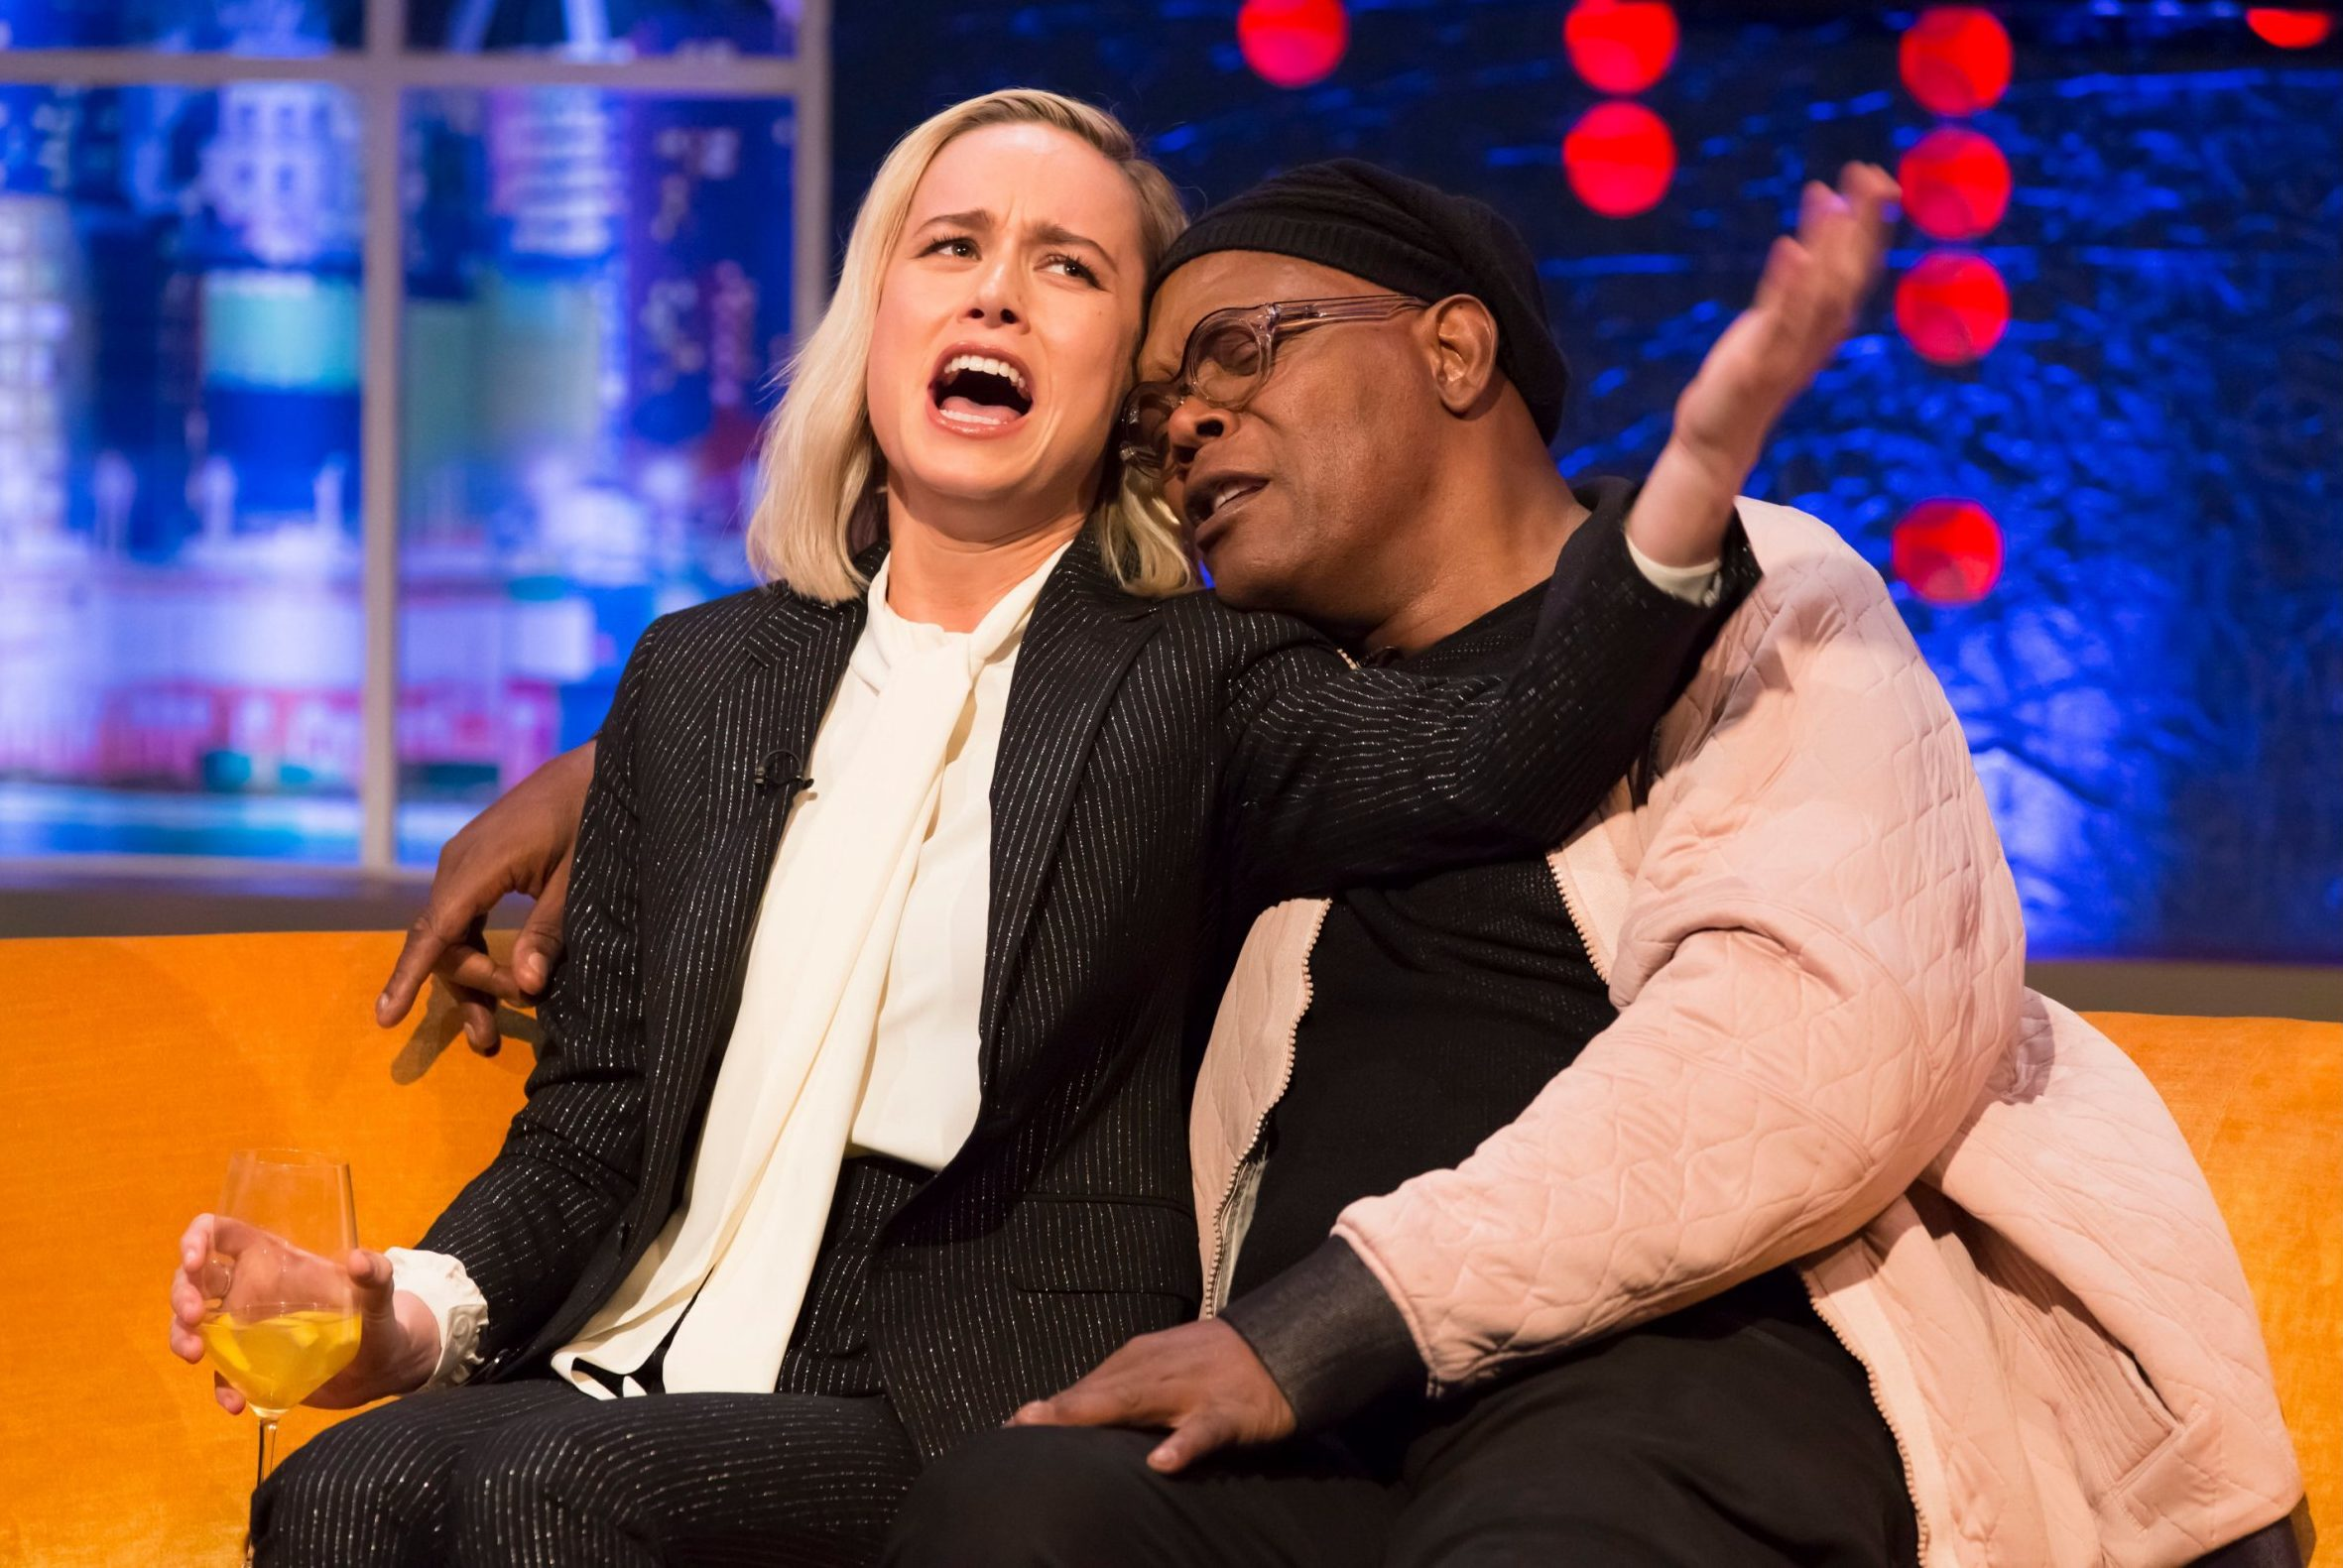 Mandatory Credit: Brian J Ritchie/Hotsauce Editorial Use Only Mandatory Credit: Photo by Brian J Ritchie/Hotsauce/REX (10125518al) Brie Larson, Samuel L Jackson 'The Jonathan Ross Show' TV show, series 14, Episode 1, London, UK - 02 Mar 2019